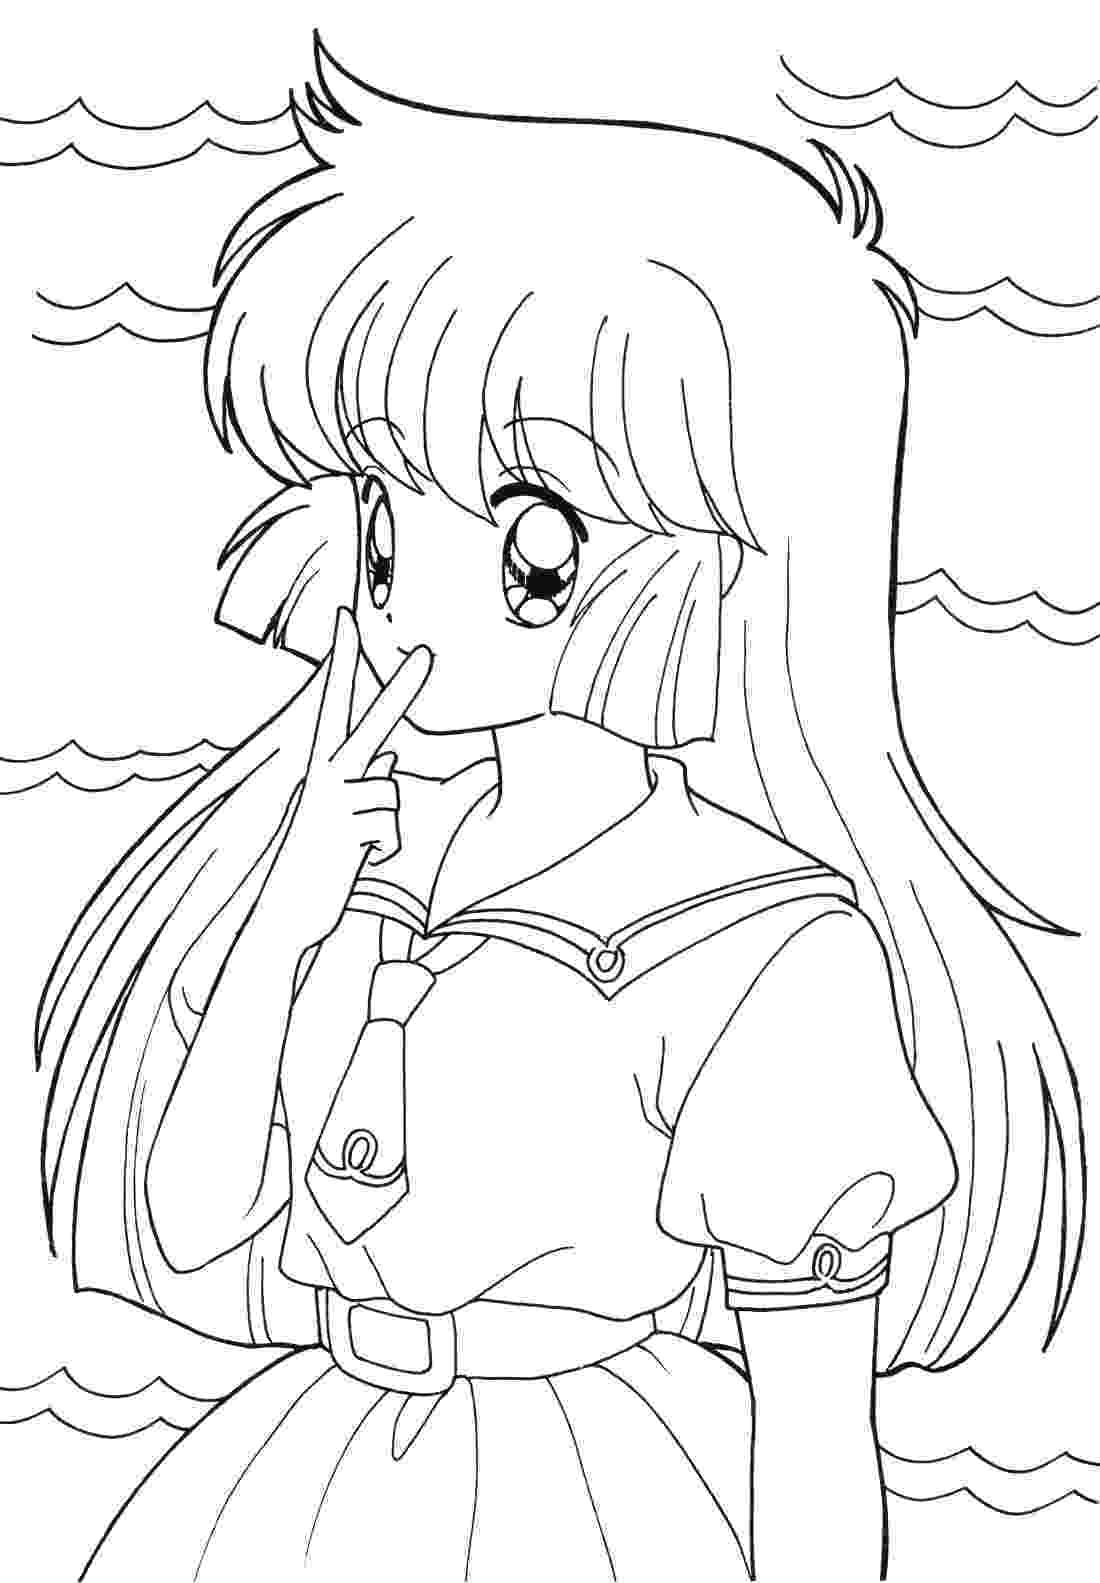 girl colering pages ladies coloring pages to download and print for free pages colering girl